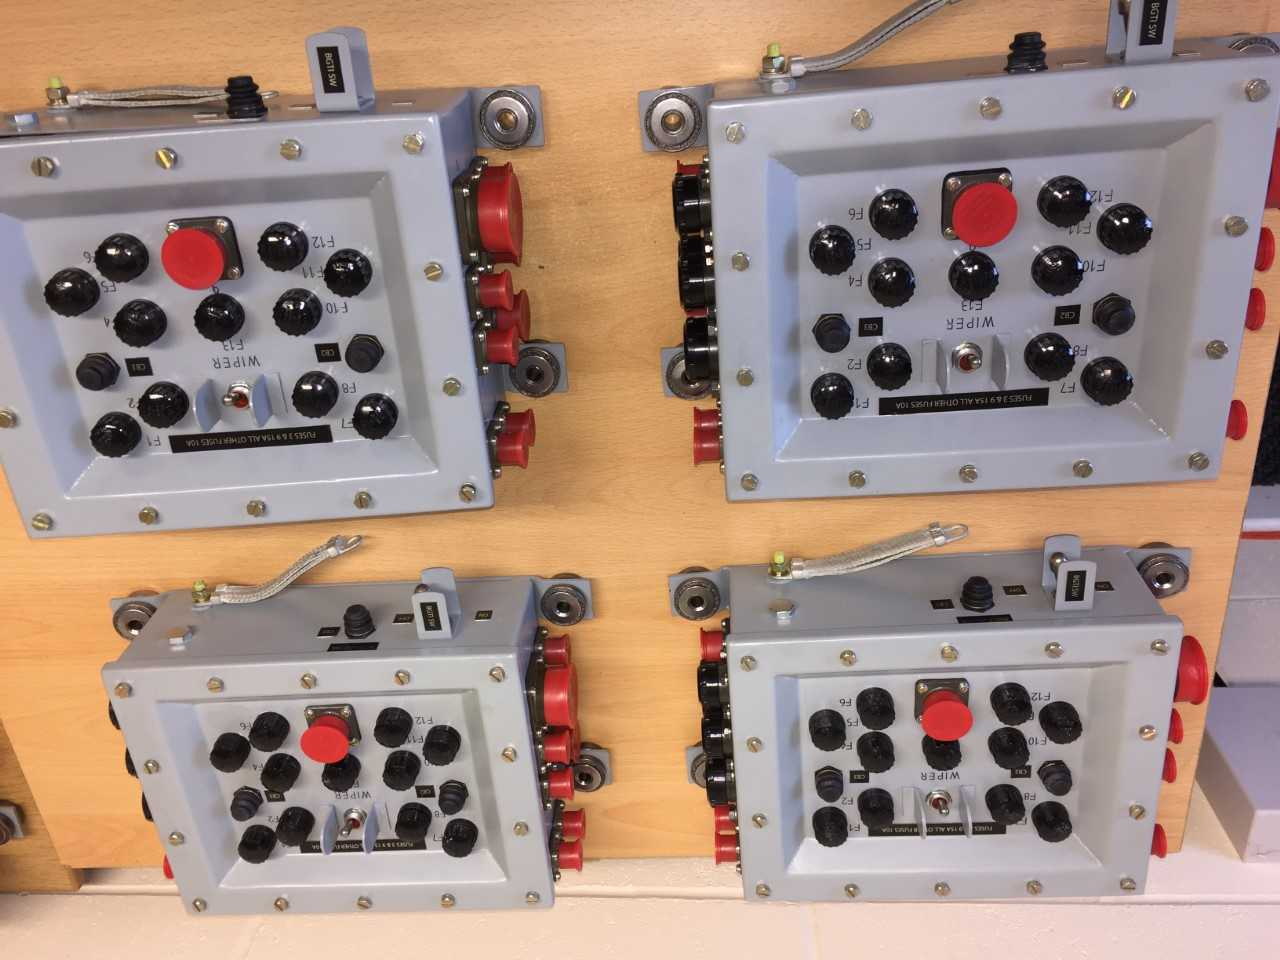 Control Power Supply Box Assembly